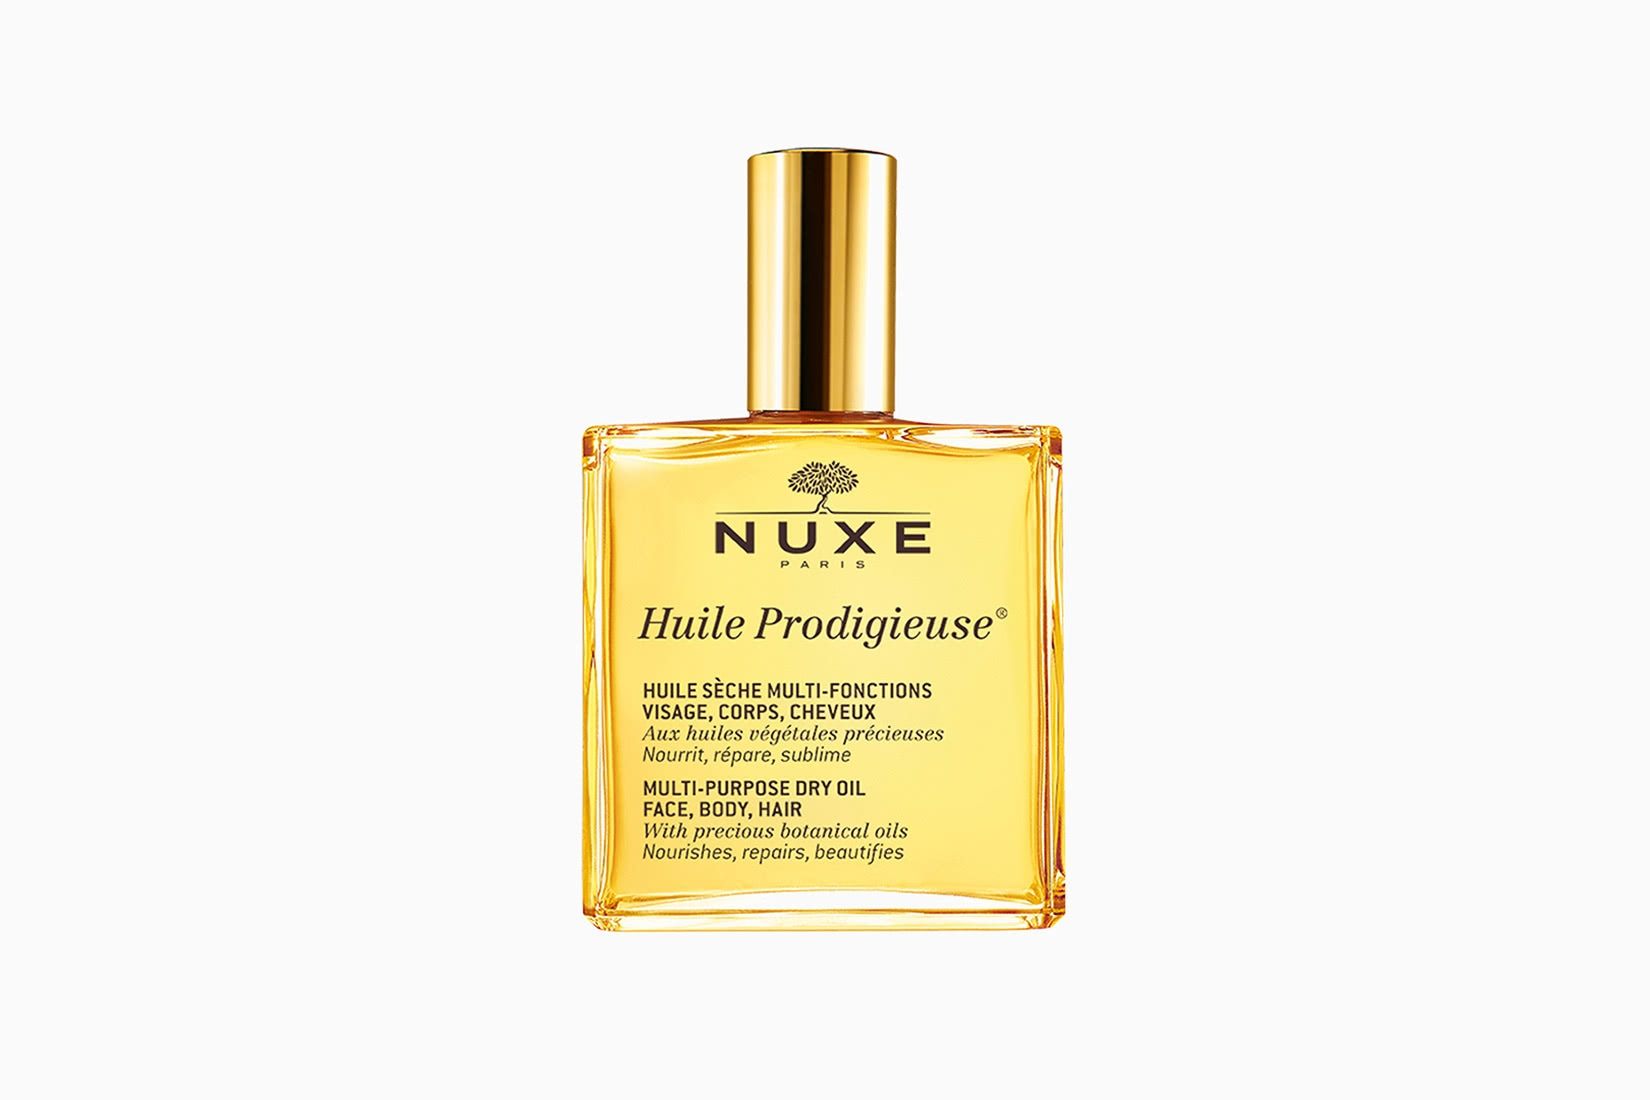 best natural organic beauty skincare nuxe huile prodigieuse - Luxe Digital